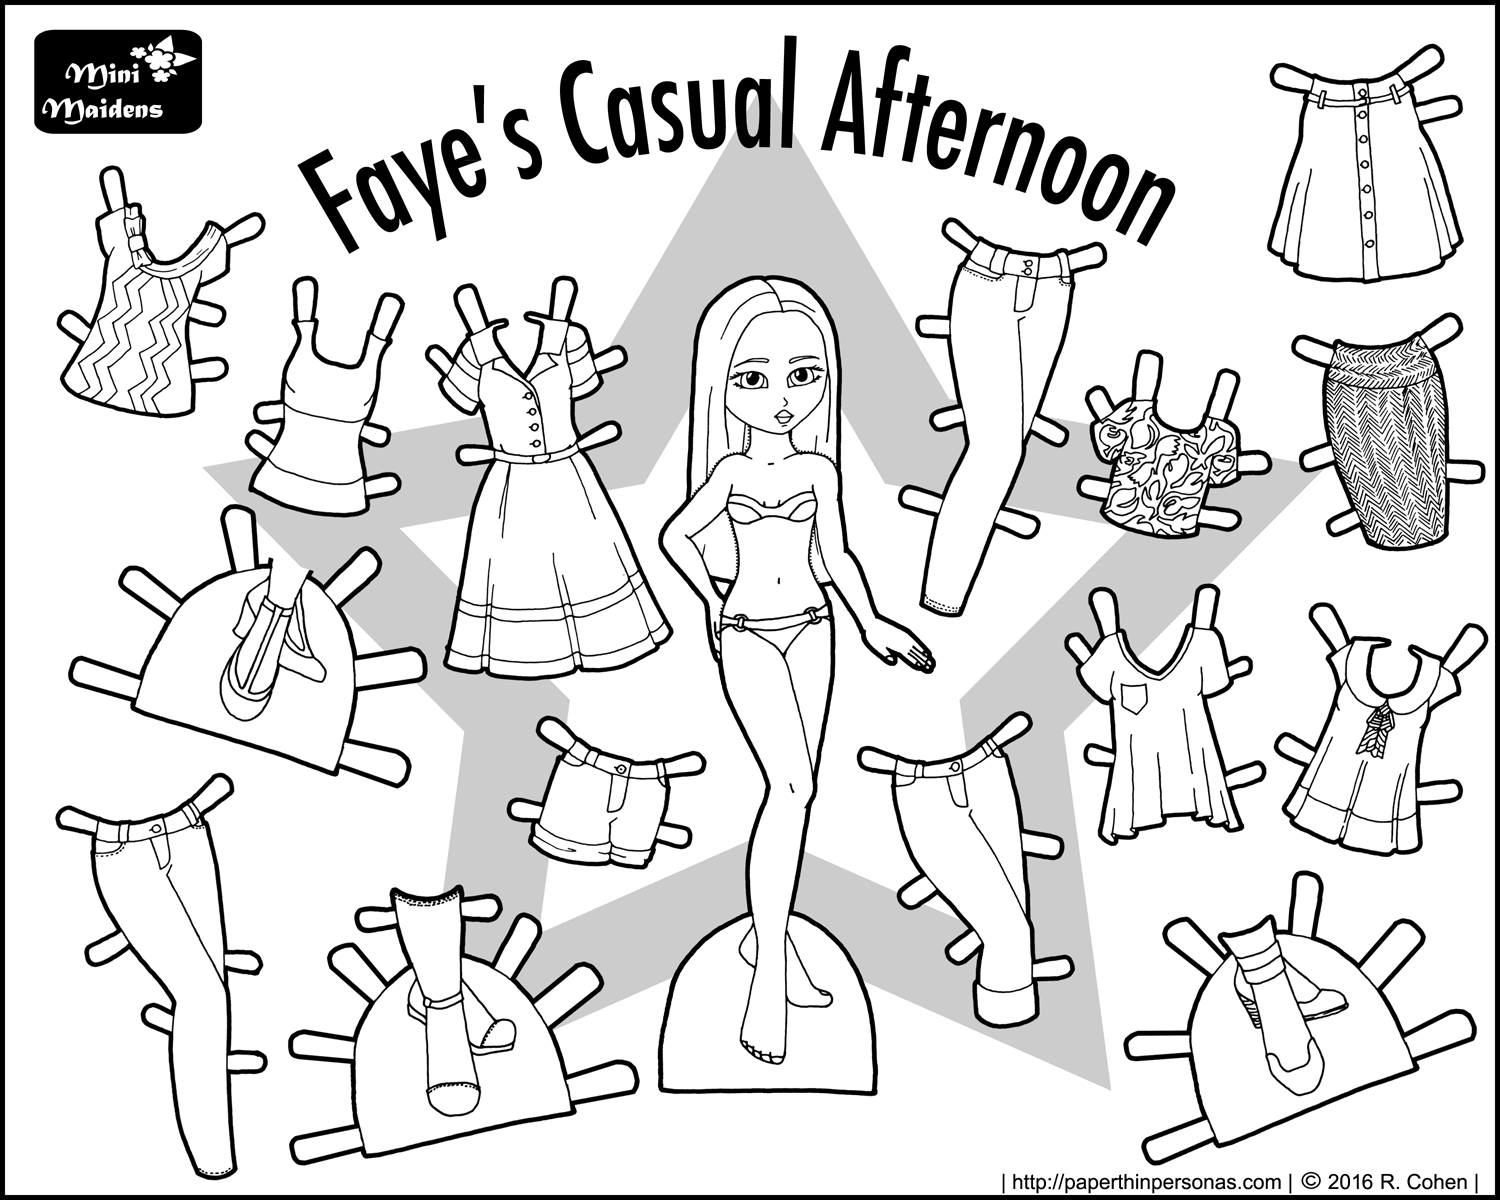 Fayes Casual Afternoon Paper Doll Coloring Sheet